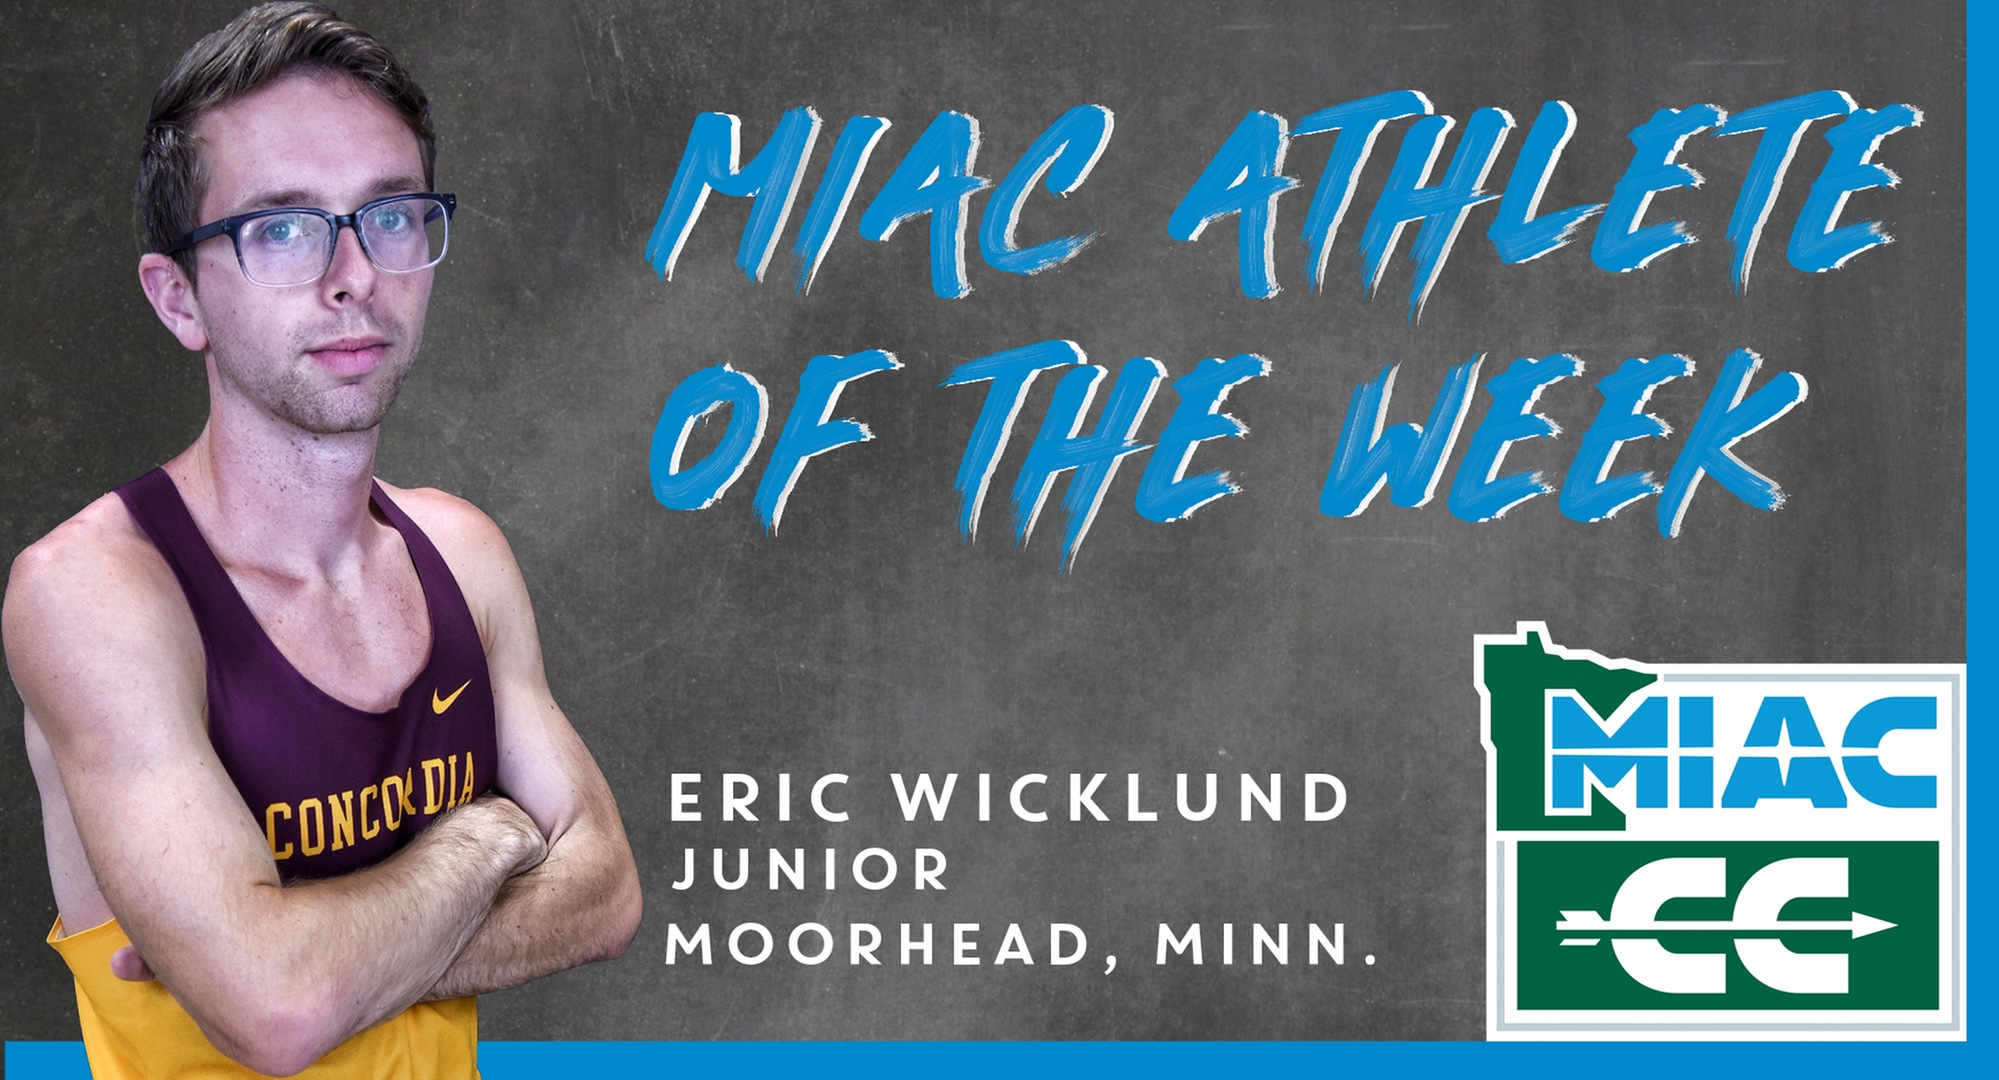 Eric Wicklund was named the MIAC Athlete of the Week after winning the Jamestown Invitational.